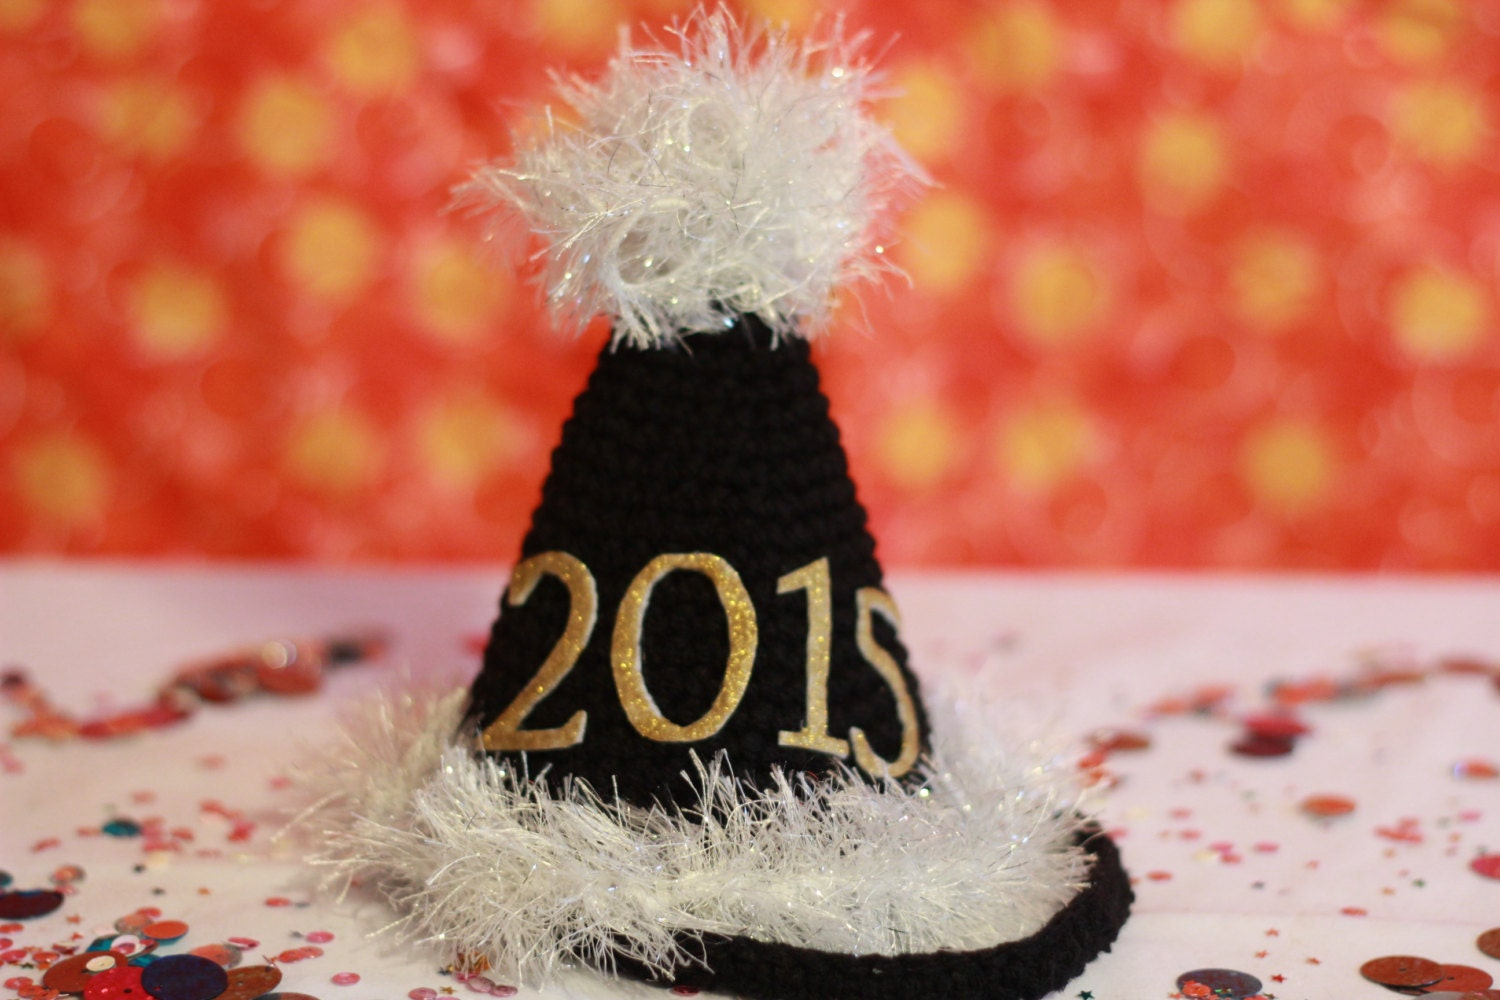 NEW YEAR'S EVE HOME PARTY DECORATING IDEAS NEW YEAR'S EVE HOME PARTY DECORATING IDEAS il fullxfull